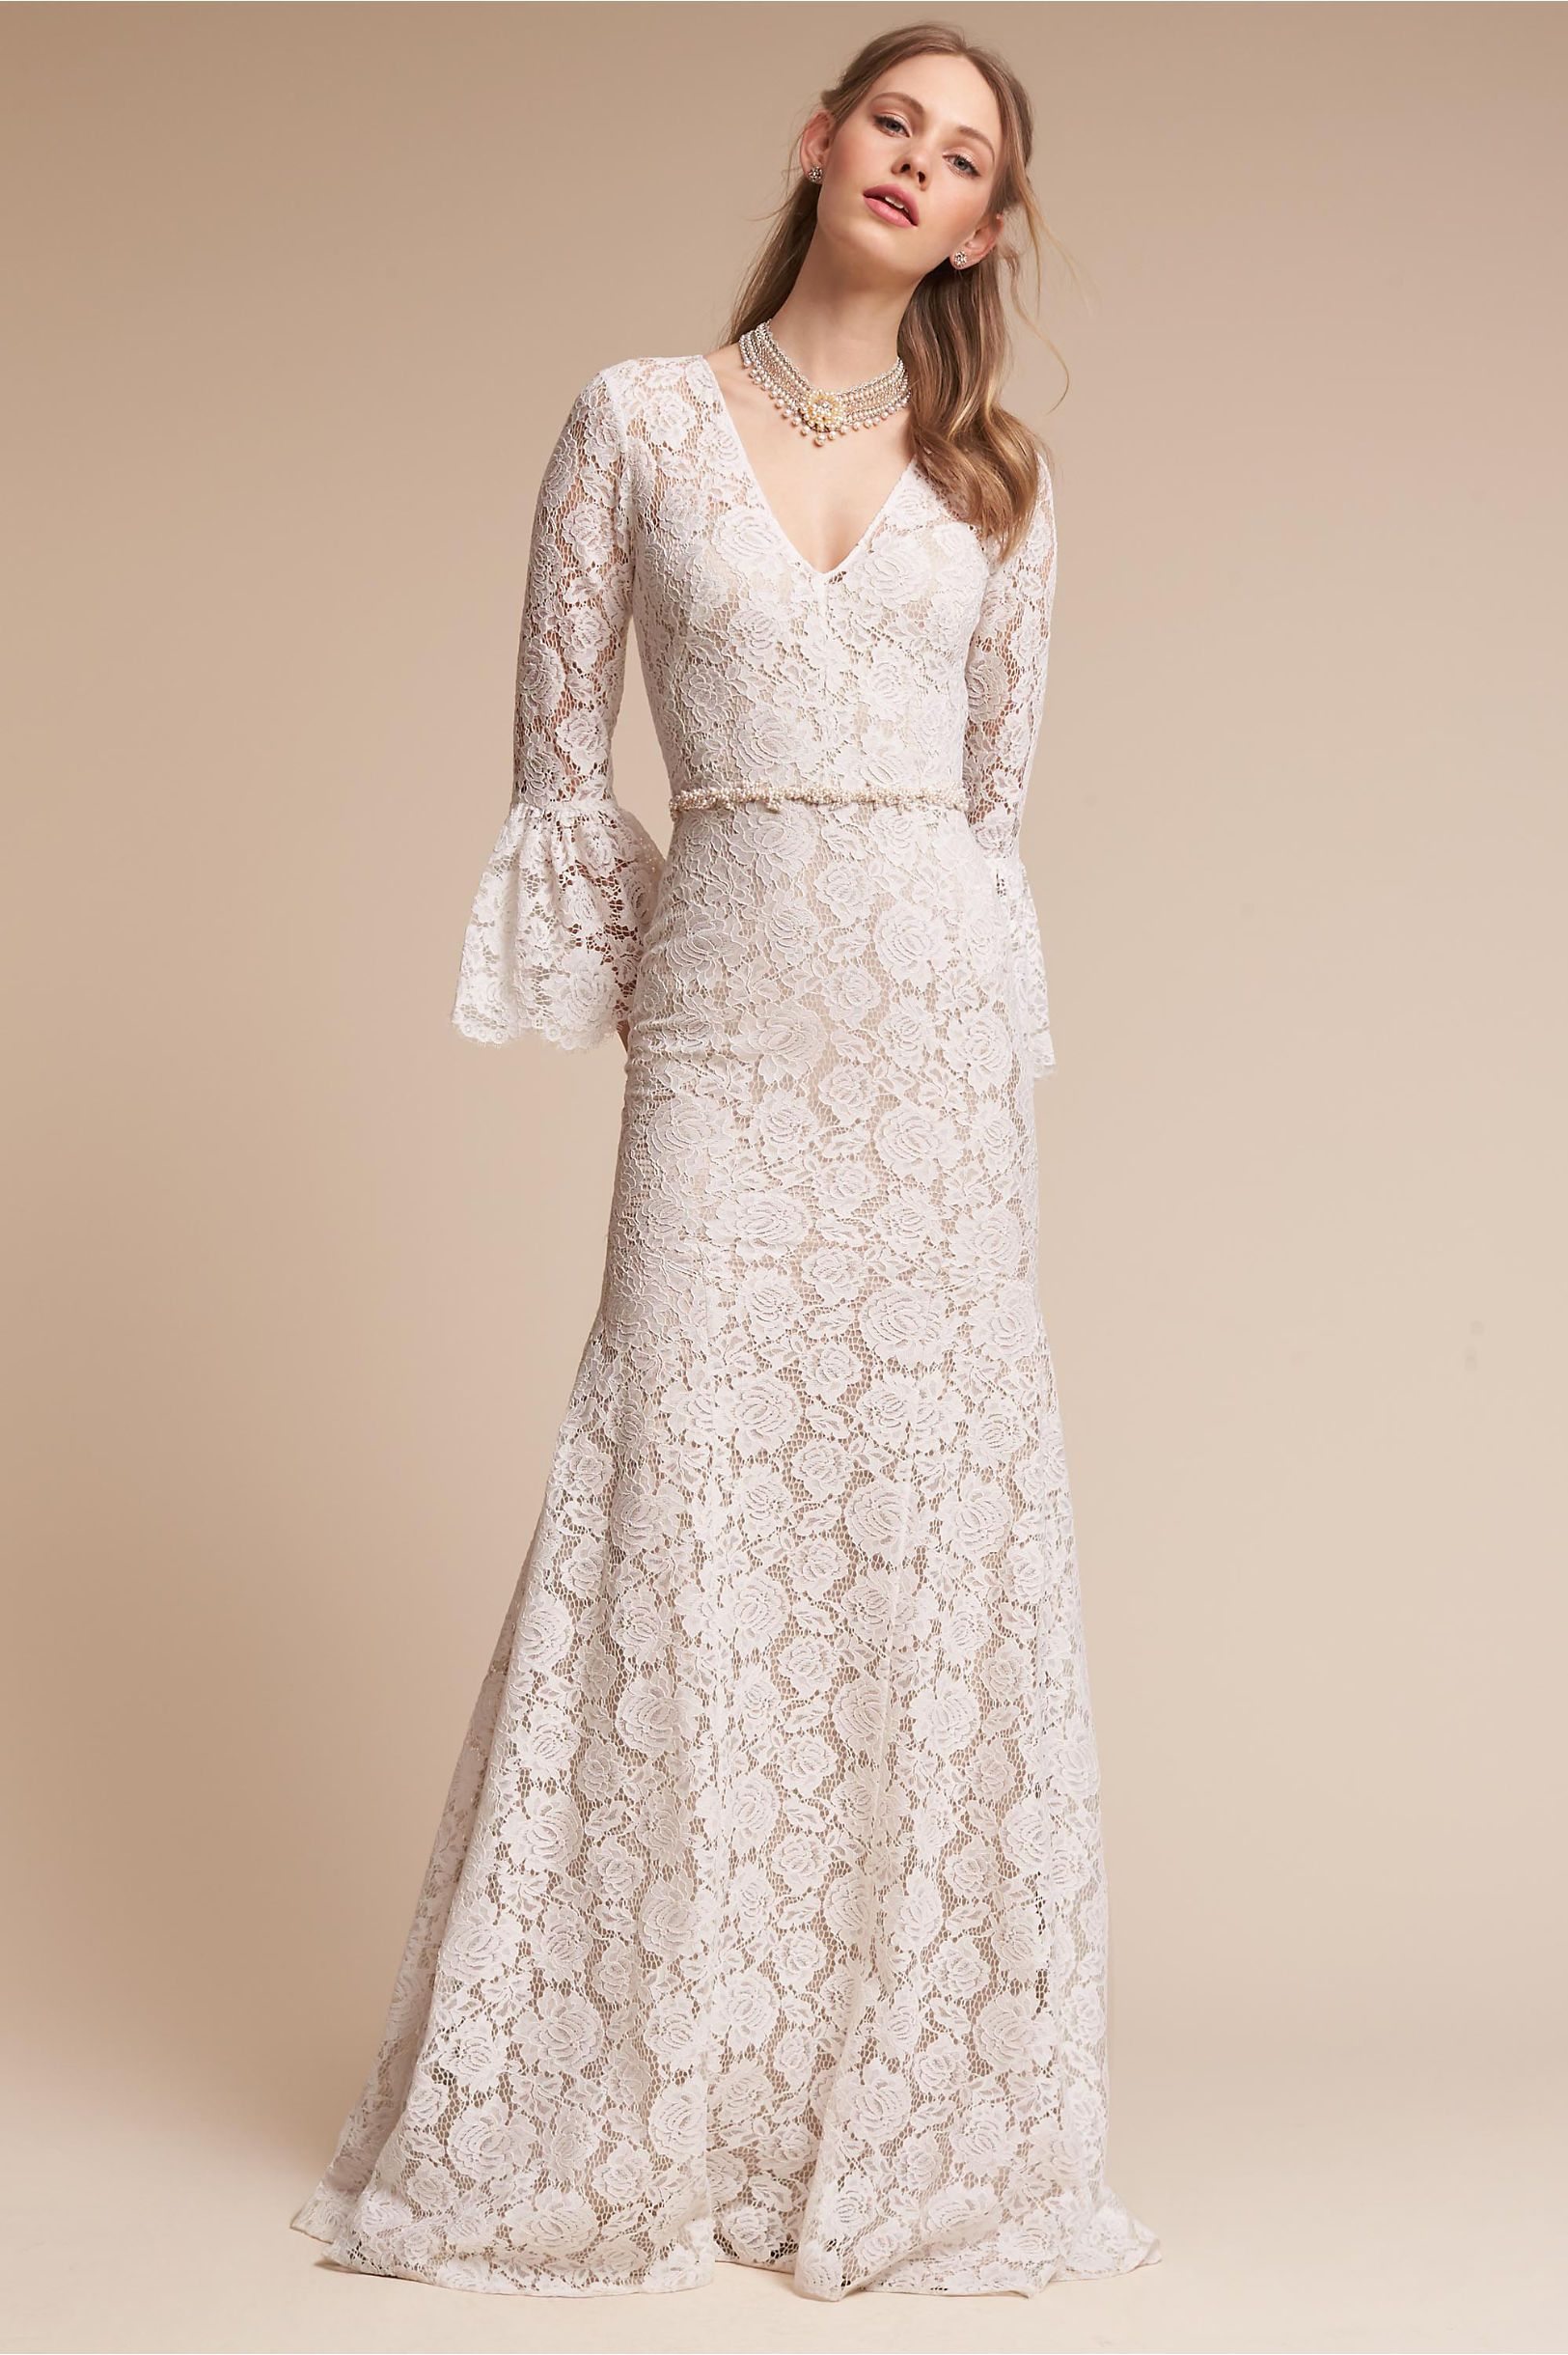 Update Bestselling Lace Dress Bhldn Ivory Champagne Harbor Gown In